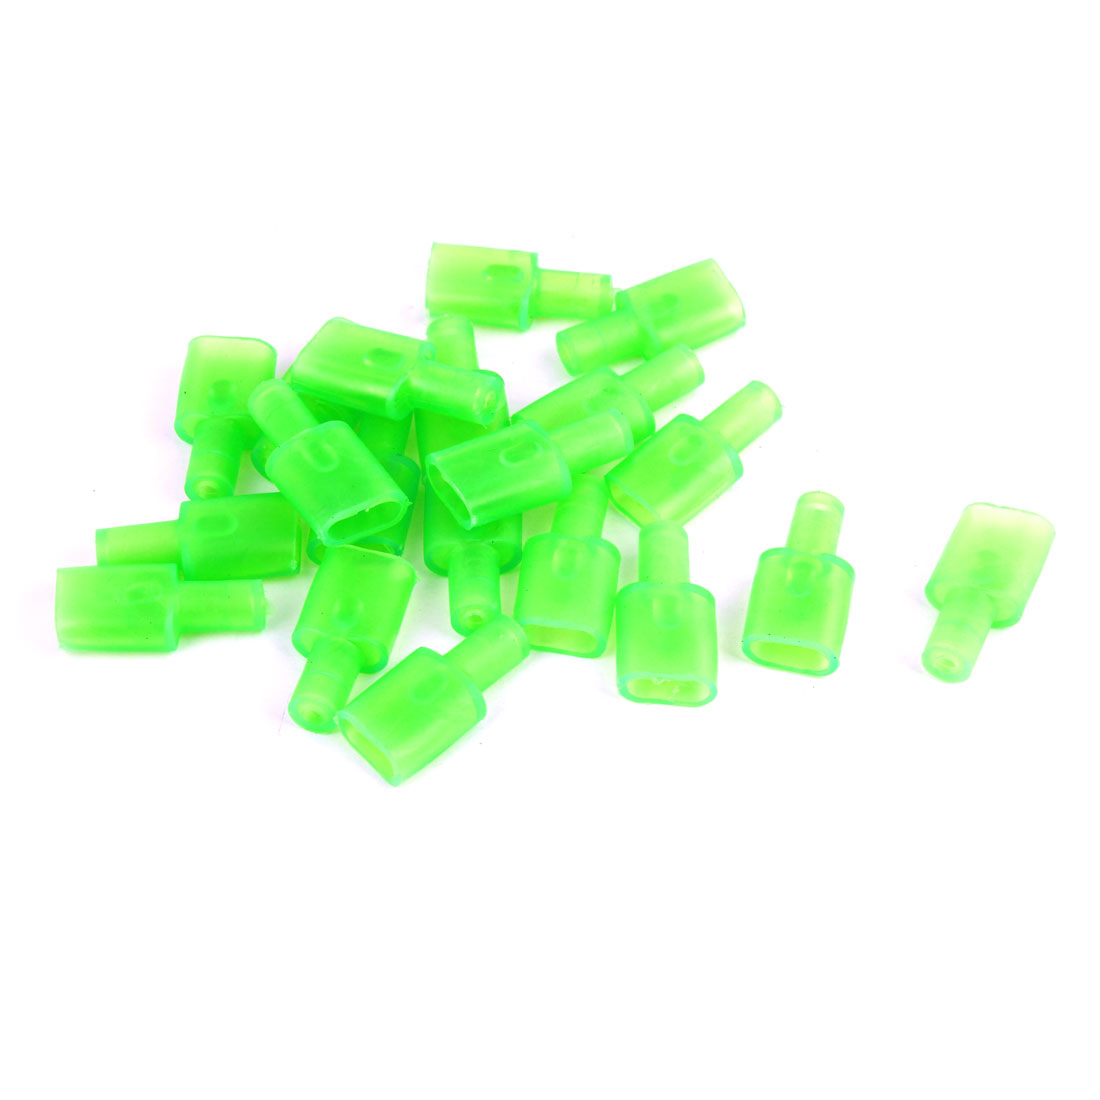 20 Pcs Green Connectors 7.8mm Female Terminal Sleeves for Motorbike Auto